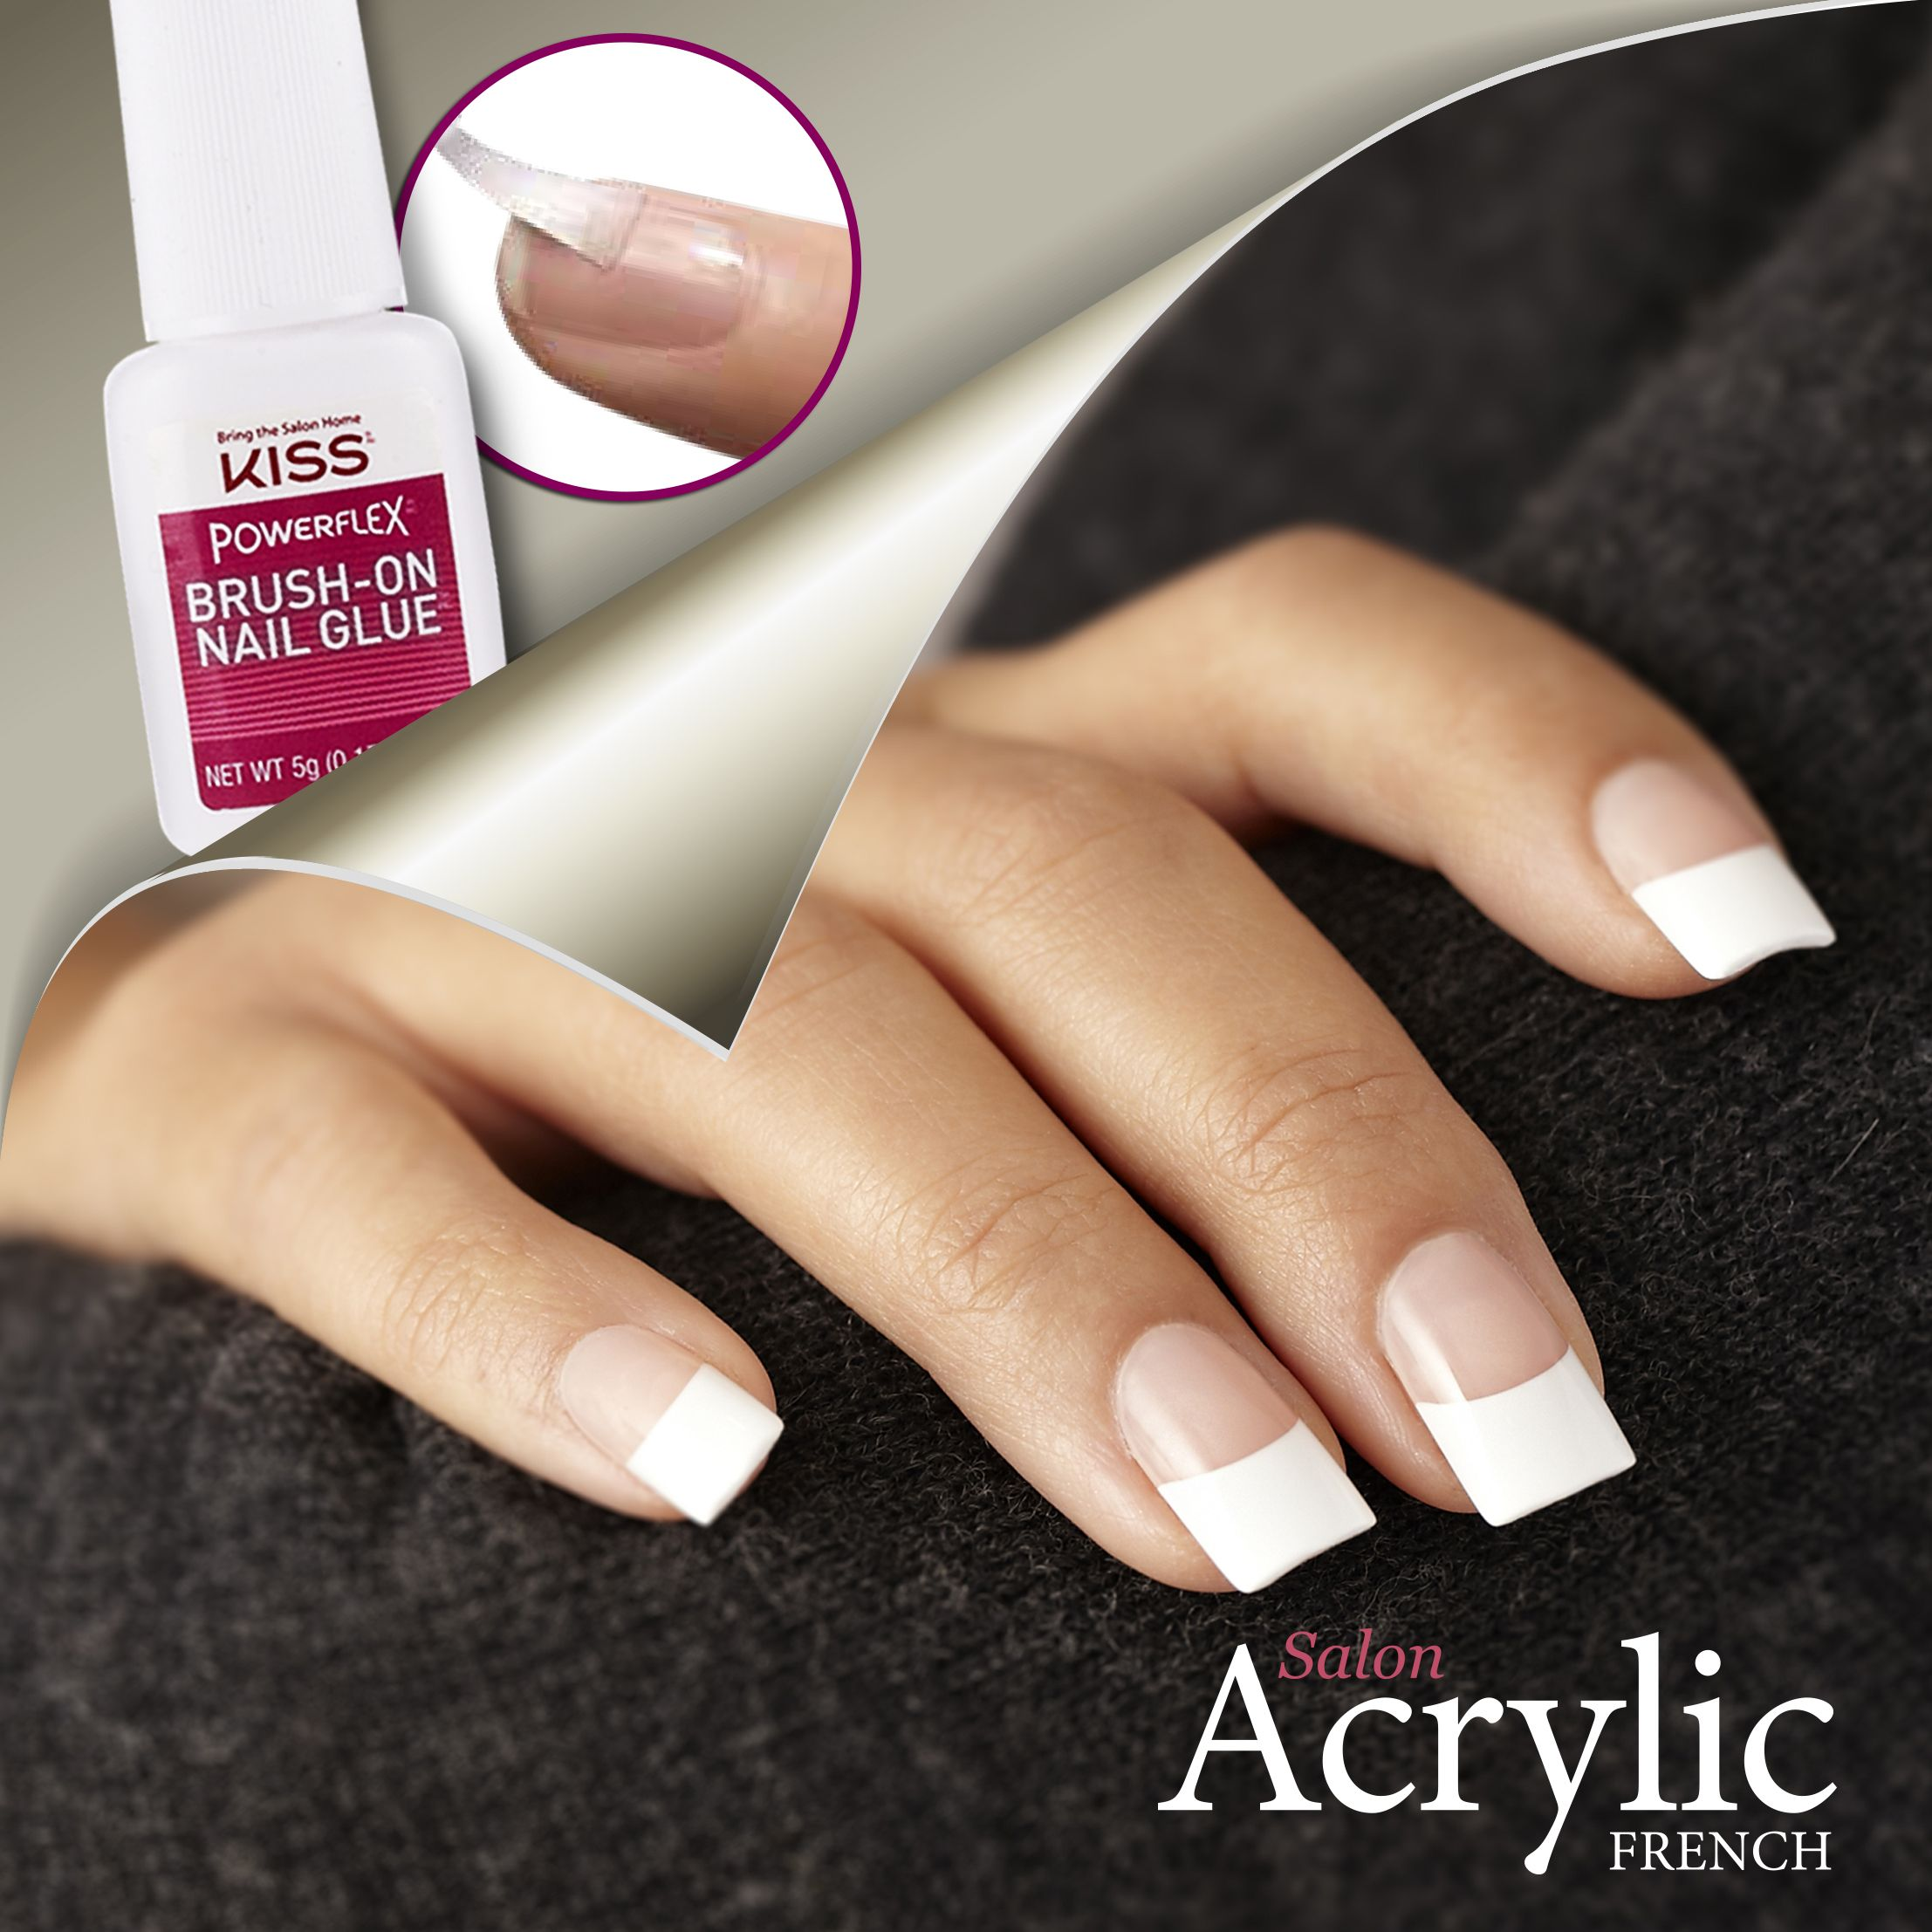 Think Sophistication Think Salon Acrylic French Acrylic Infused French Nails That Cost Less Than A Salon And Look Better Glue On Nails French Nails Nails